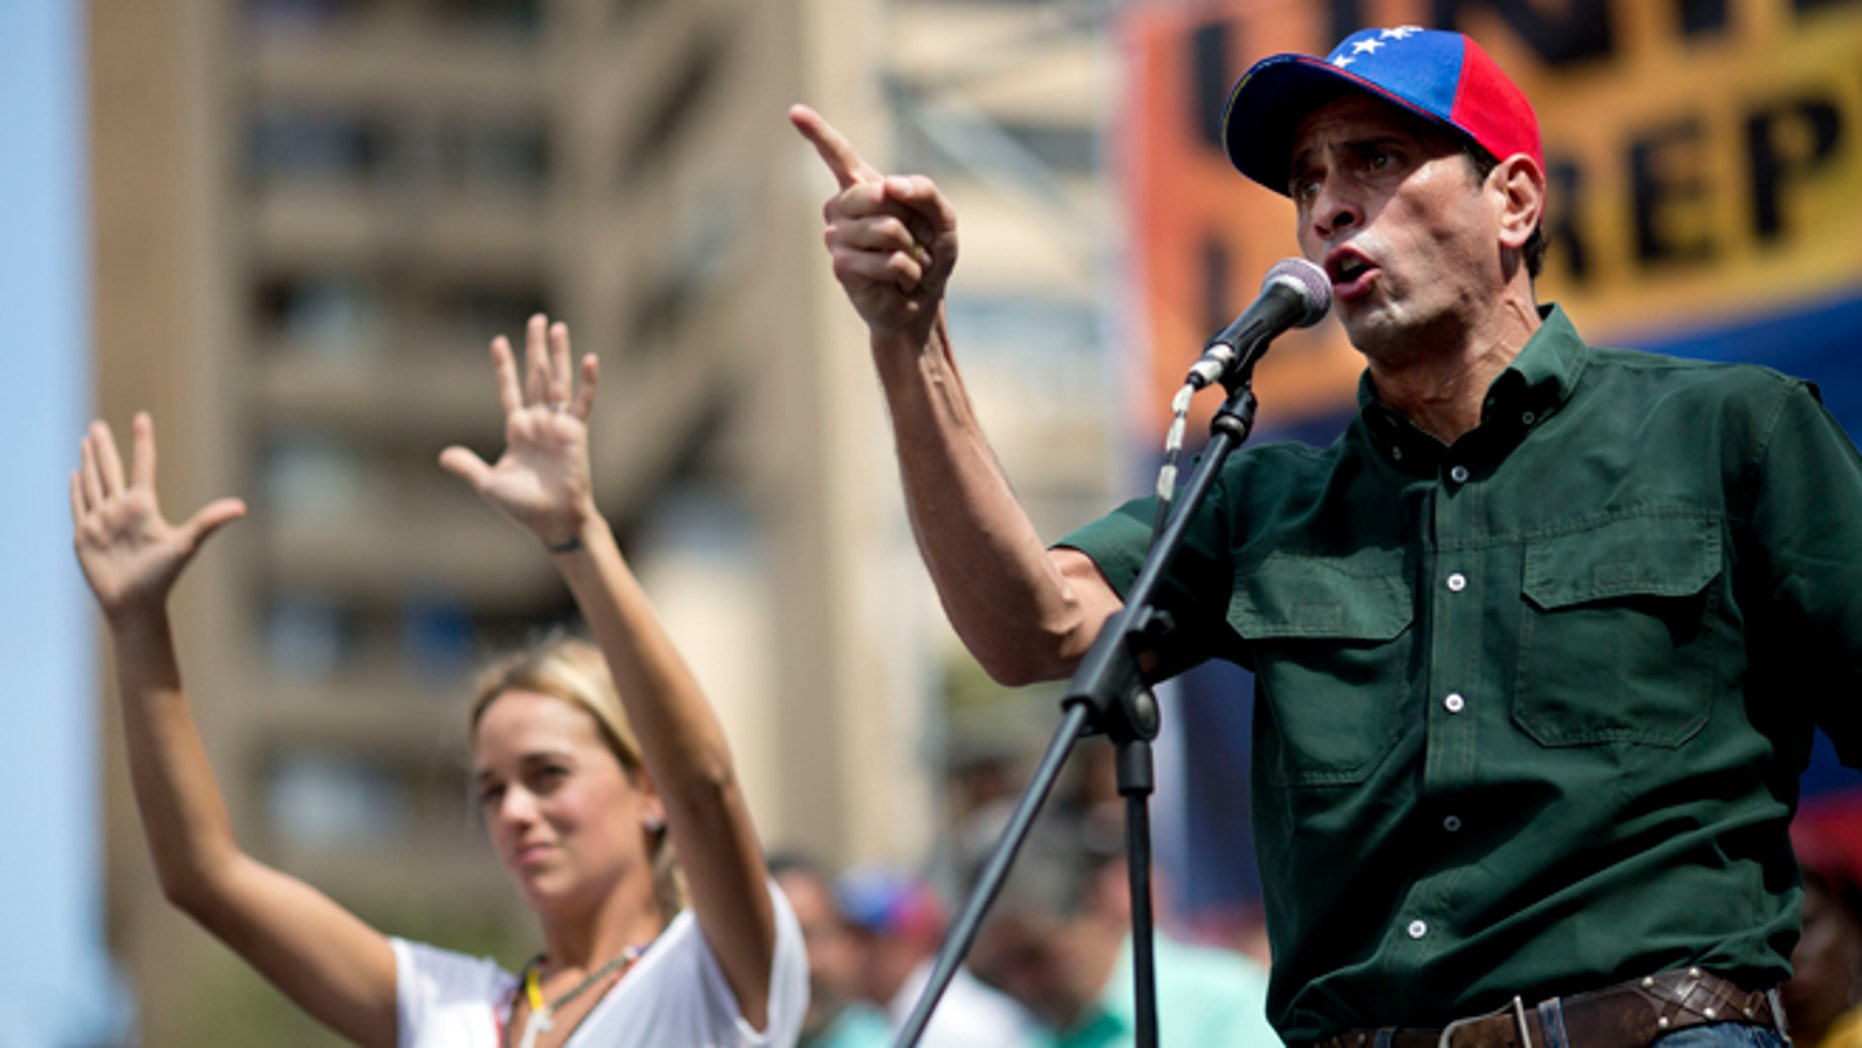 Opposition leader Enrique Capriles delivers a speech next to Lilian Tintori, wife of detained opposition leader Leopoldo Lopez, during a rally in Caracas, Venezuela, Saturday, Feb. 22, 2014. Authorities blamed opposition leader Lopez for fomenting he violence and jailed him on charges including arson and incitement, prompting anger from his supporters at home and criticism from abroad. Supporters and opponents of the government of President Nicolas Maduro are holding competing rallies in the bitterly divided country. (AP Photo/Rodrigo Abd)